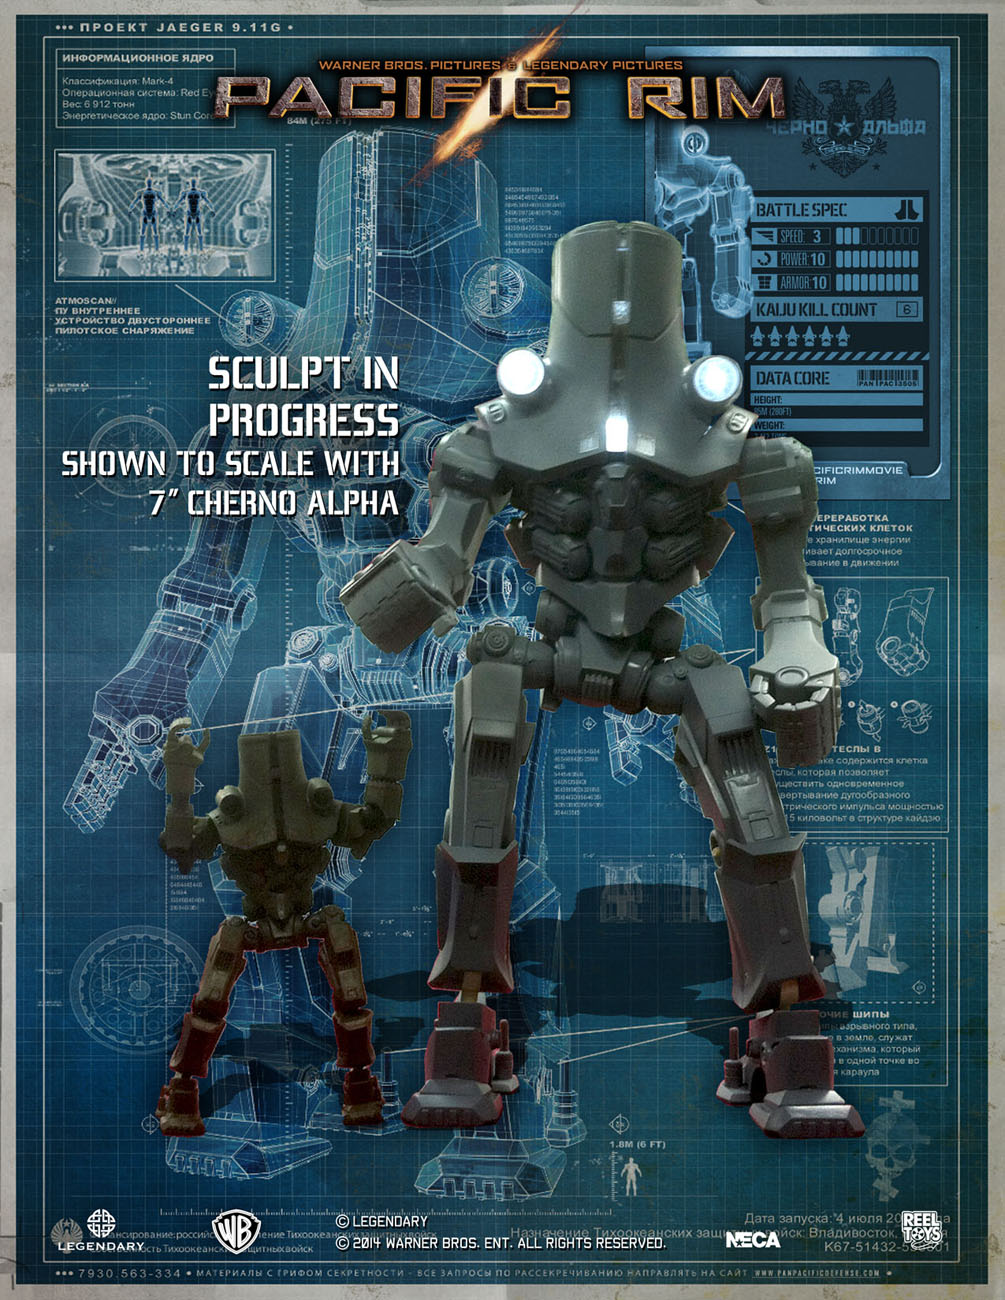 Pacific Rim toys and models - Page 143 - Toho Kingdom